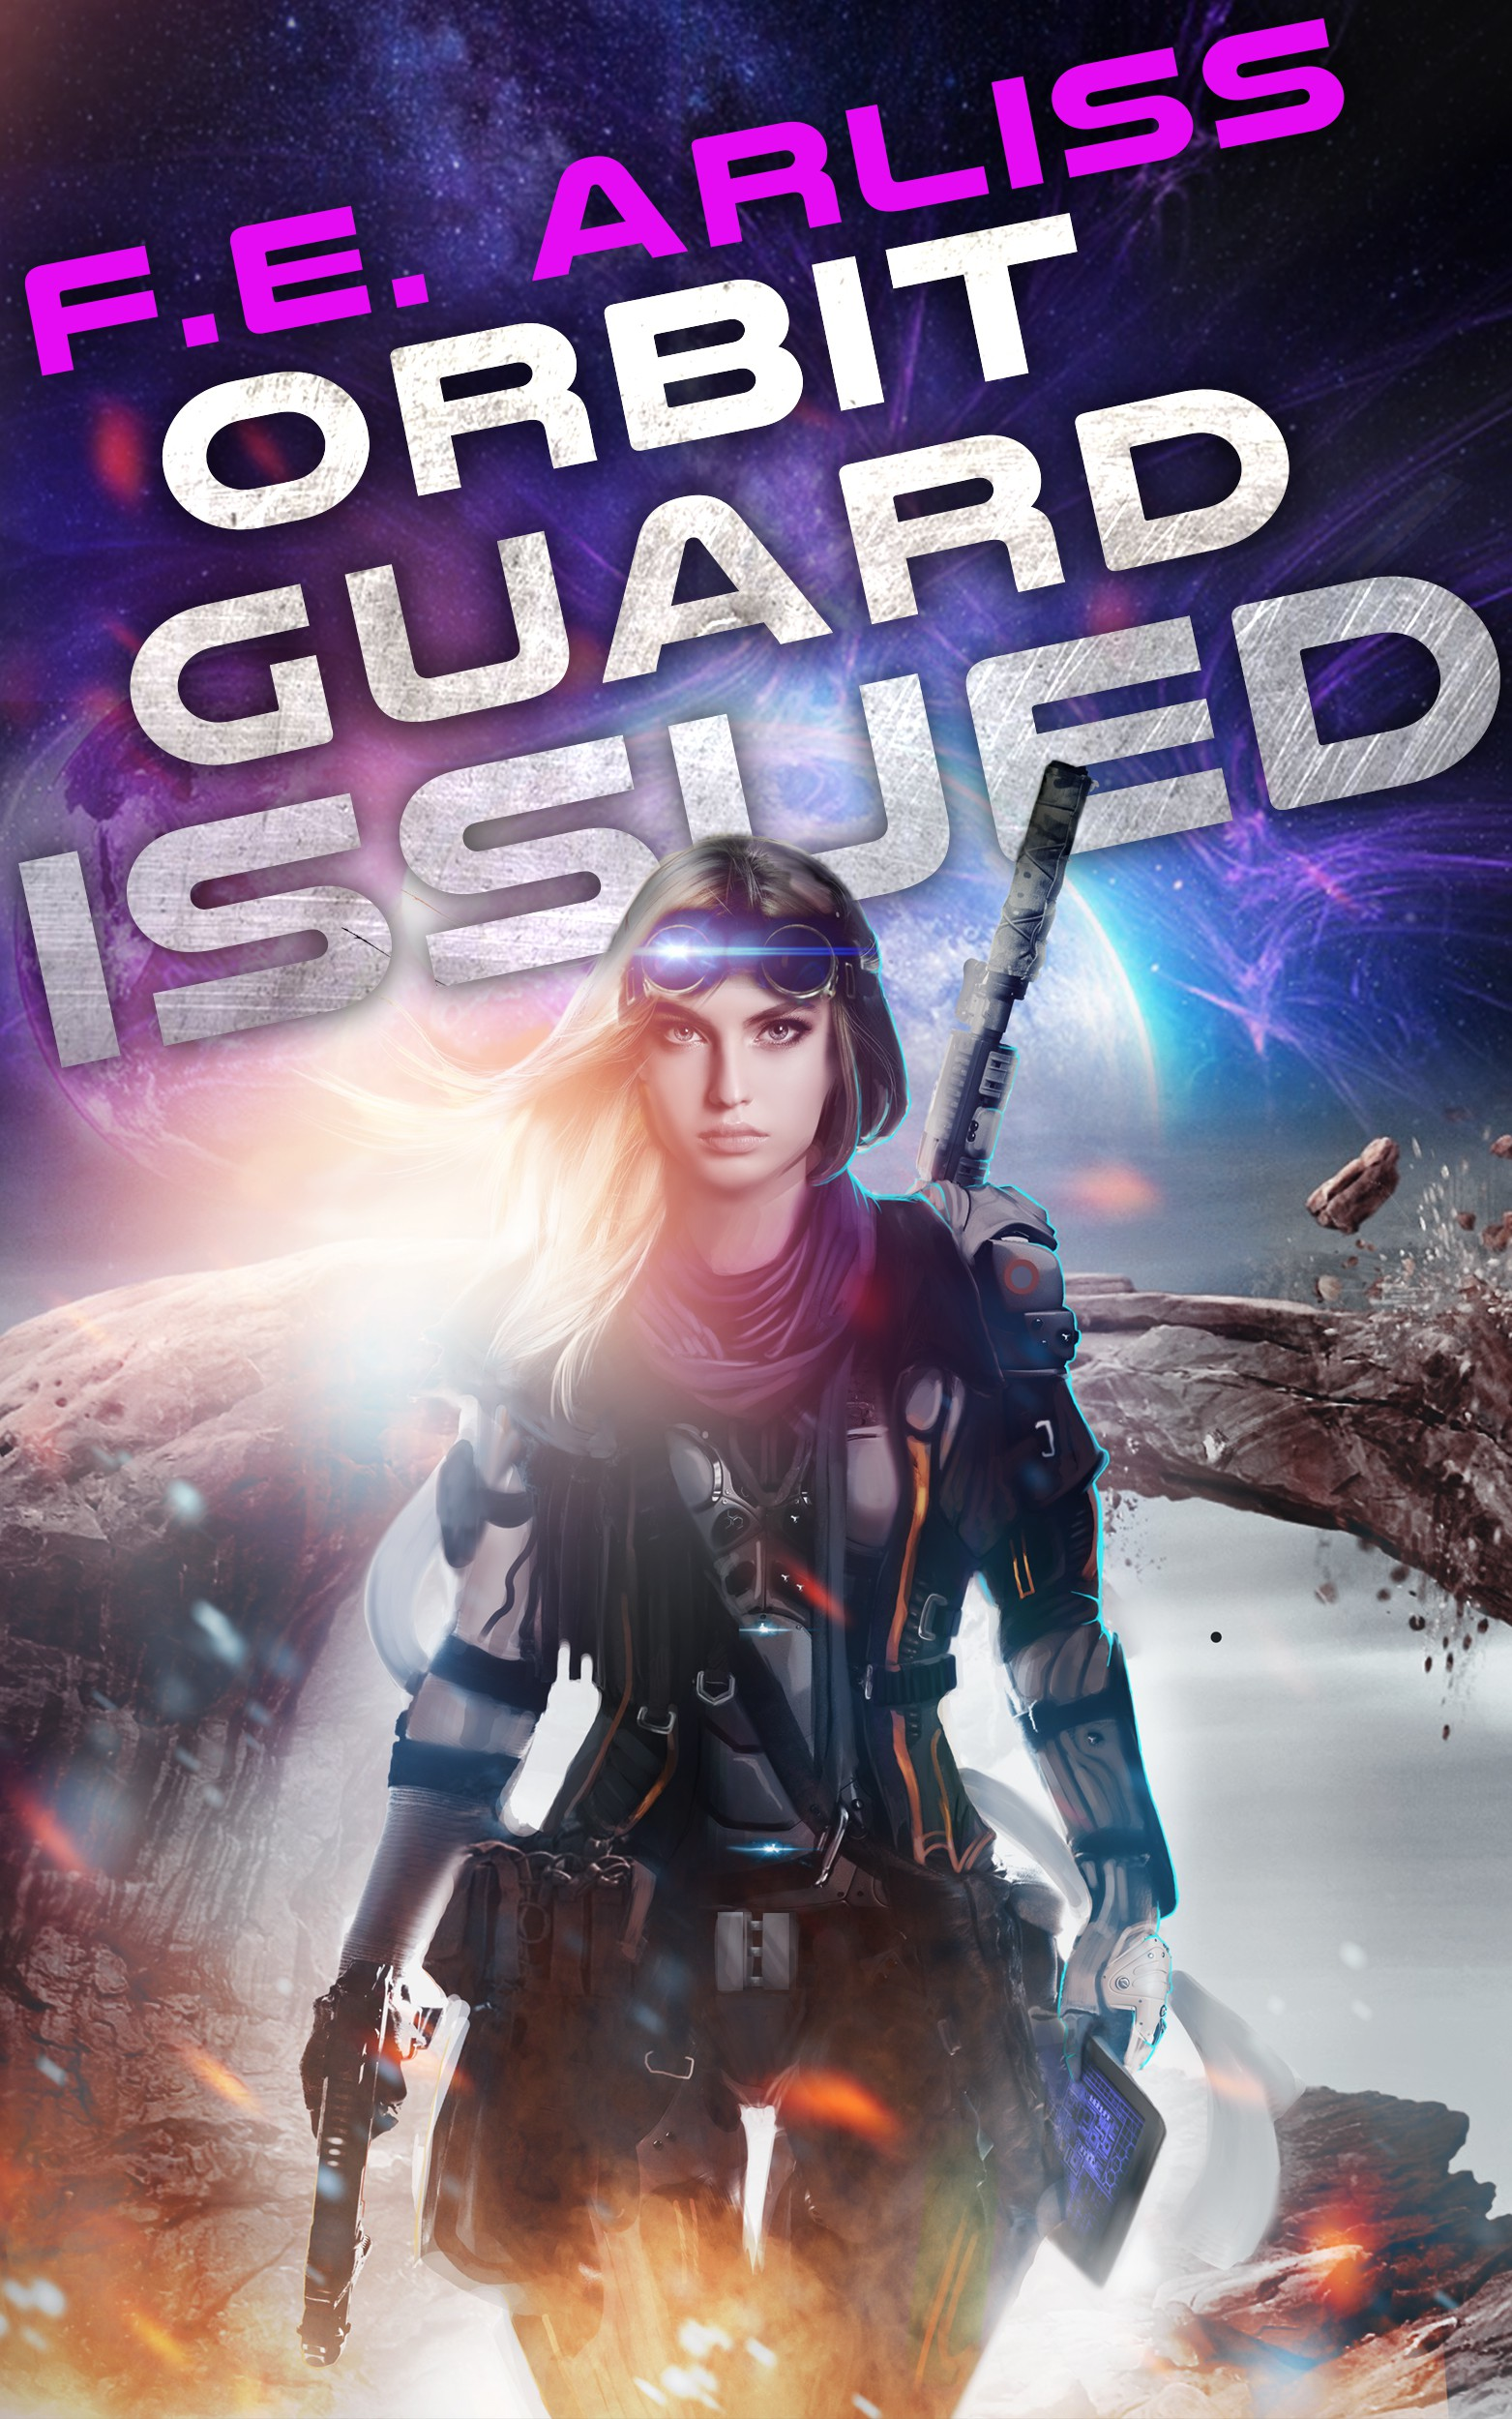 Design a book cover for a feisty female space lieutenant romance.